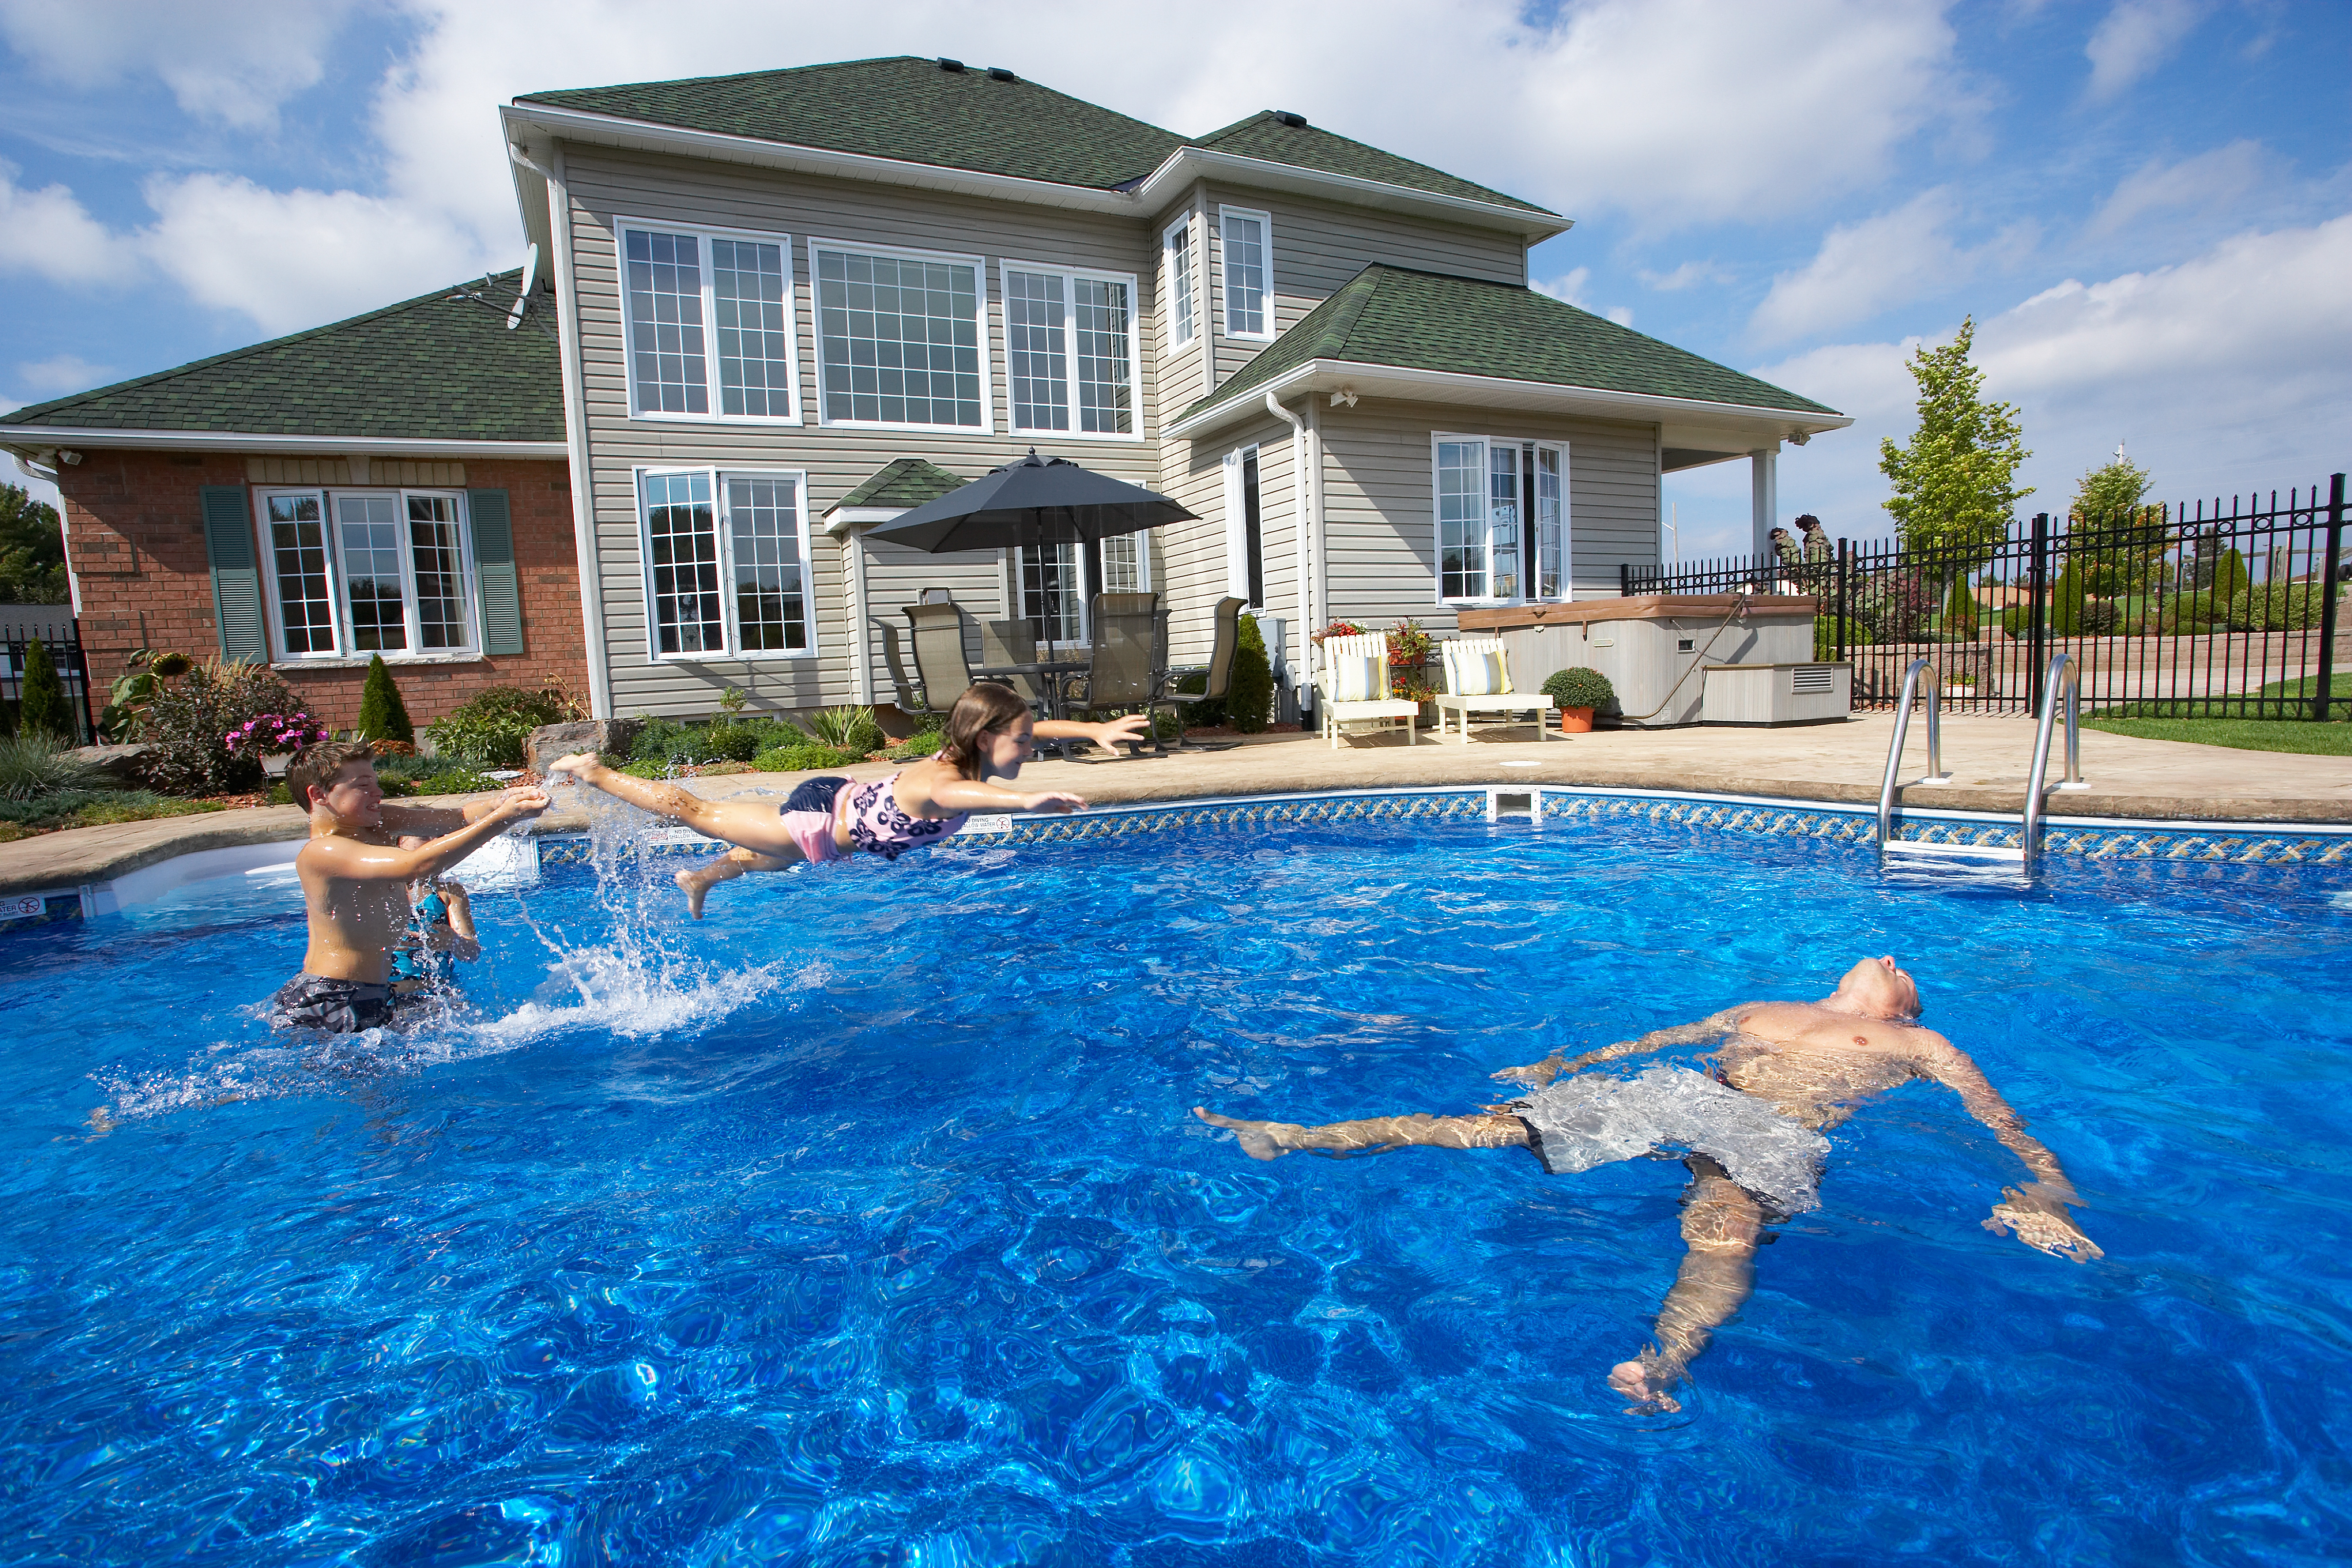 Swimming Pool Servicing : Our pool services in annapolis sunrise premiere